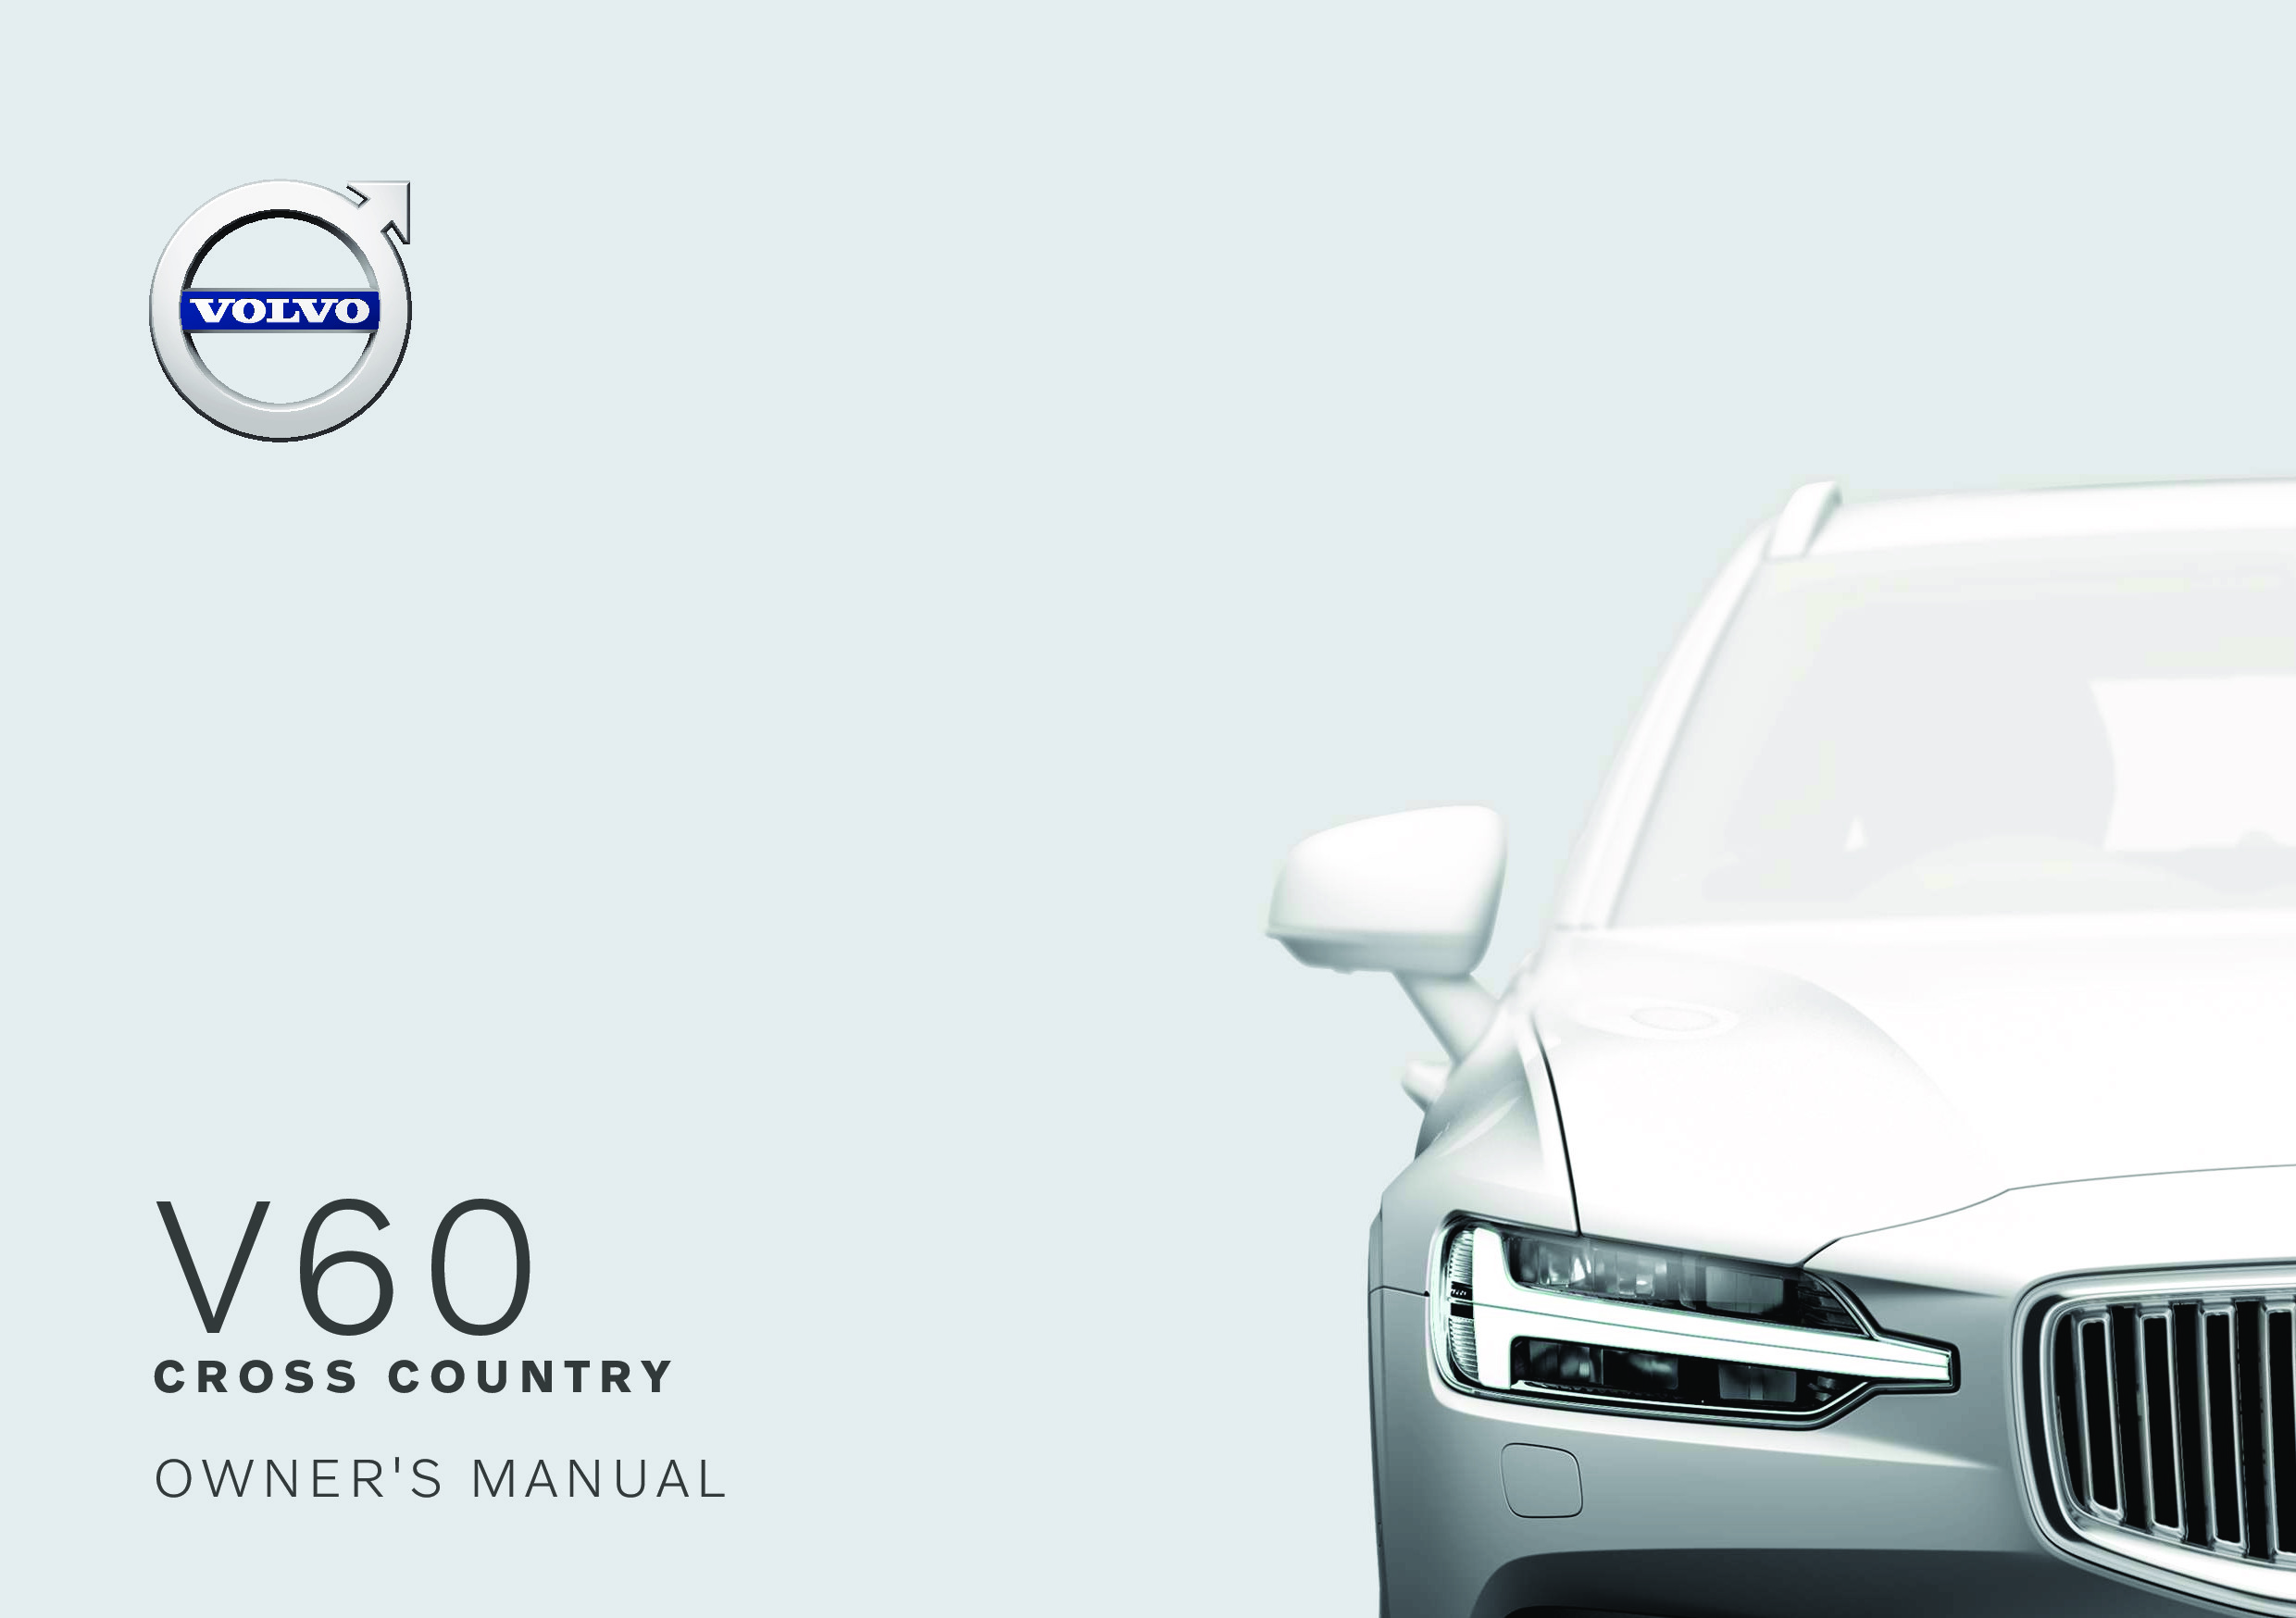 2020 Volvo V60 Cross Country owners manual